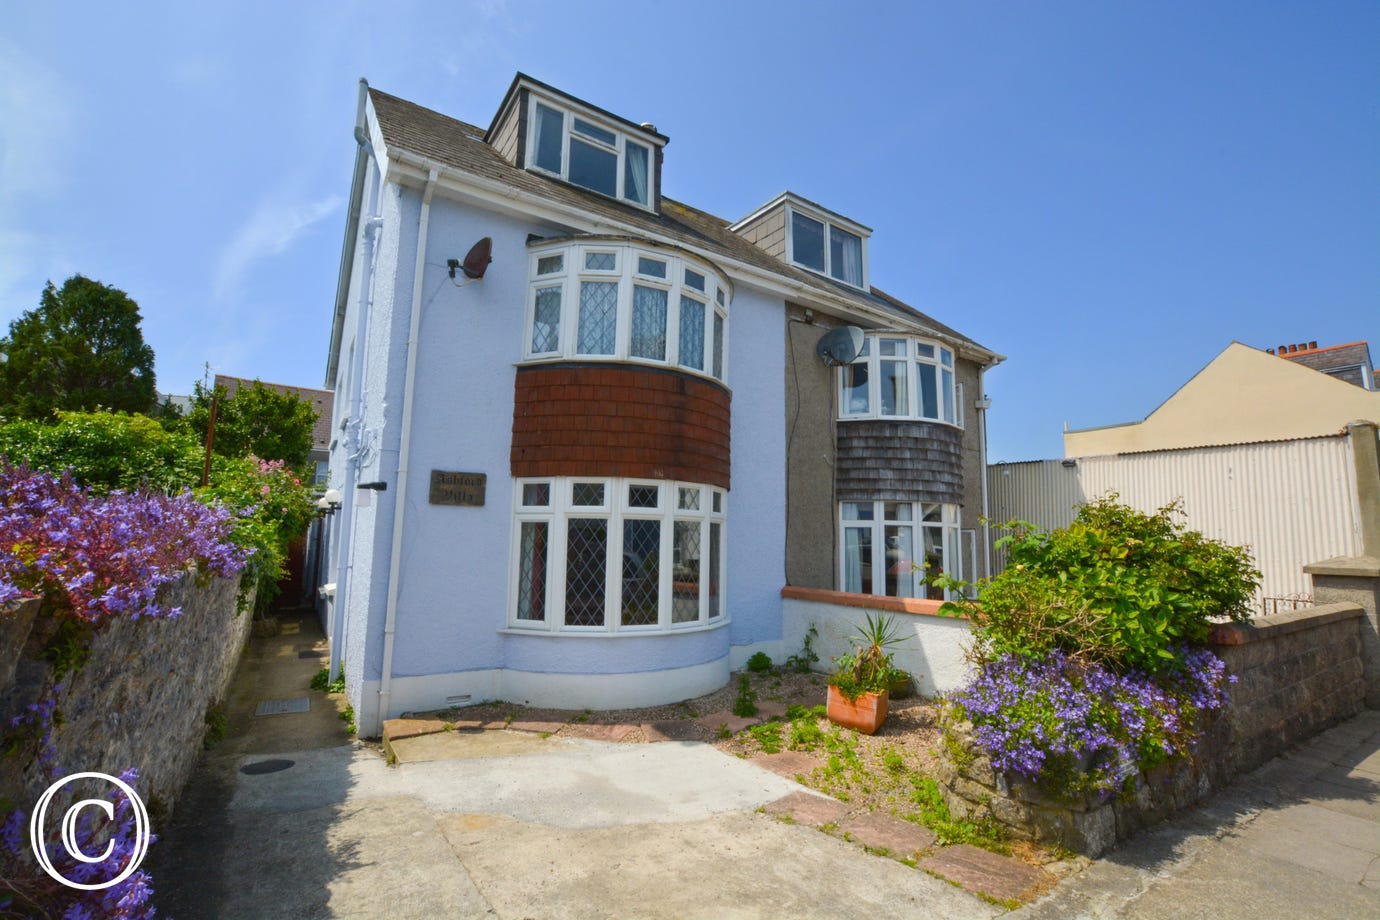 Holiday accommodation in Tenby, ideal for a family.